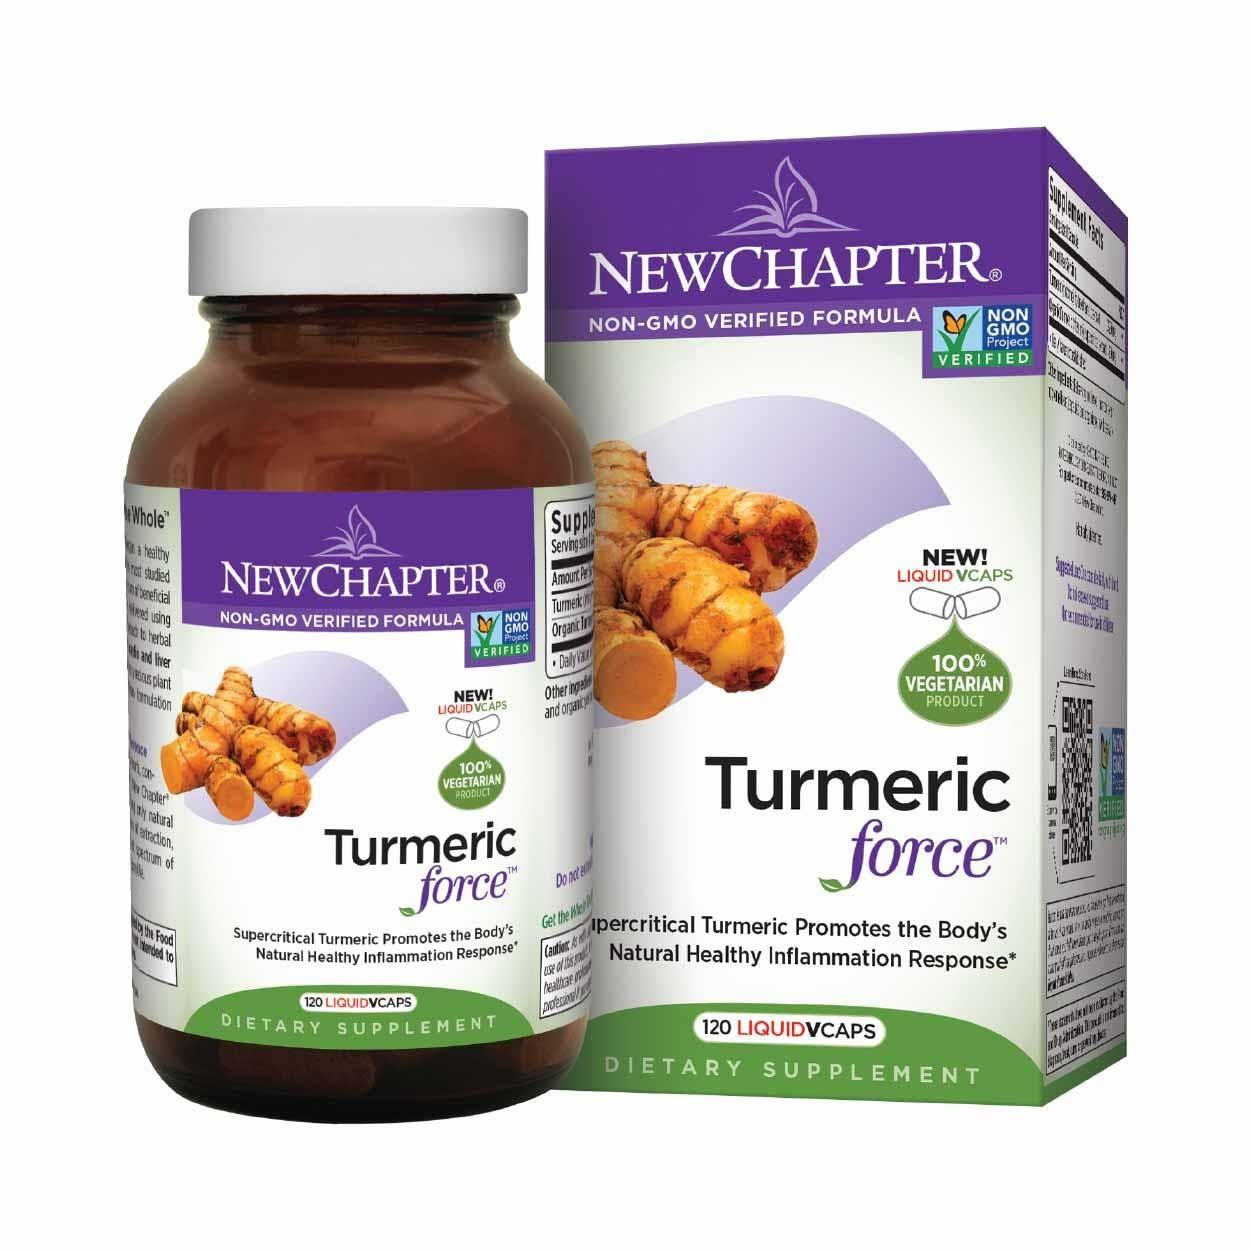 New Chapter Turmeric Force - 120 Liquid Vcaps